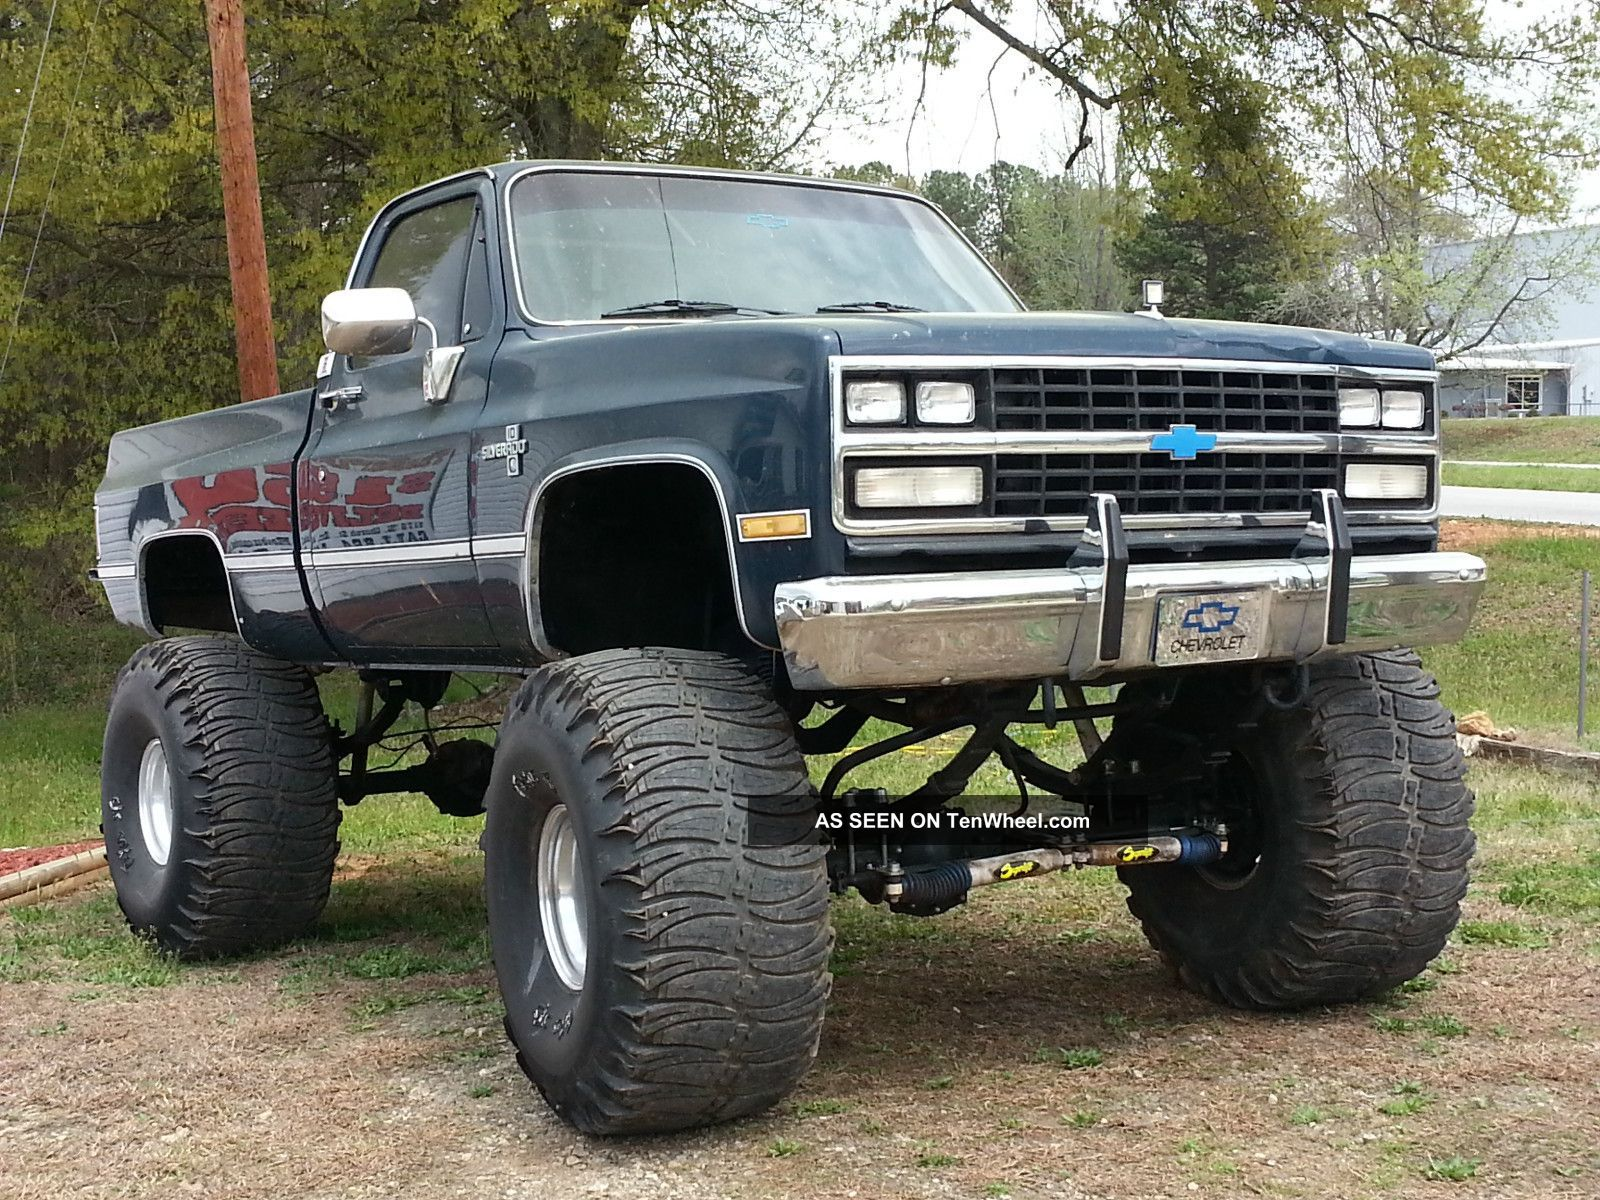 1985 lifted chevy silverado 44 s 16 lif lgw